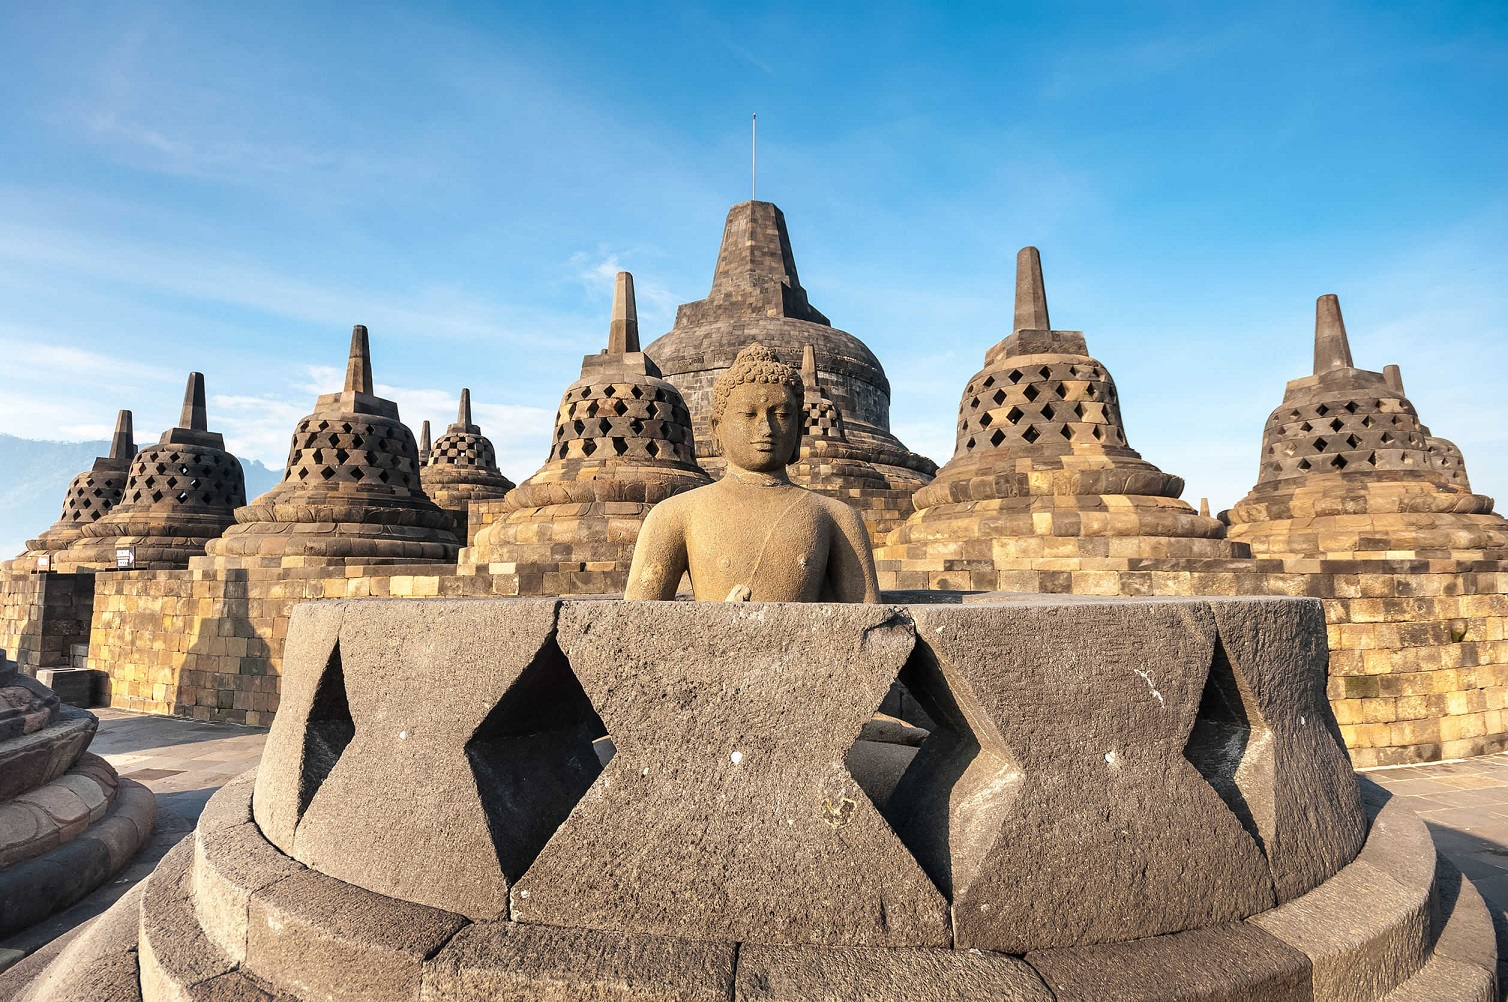 the iconic Borobudur Temple located in Magelang